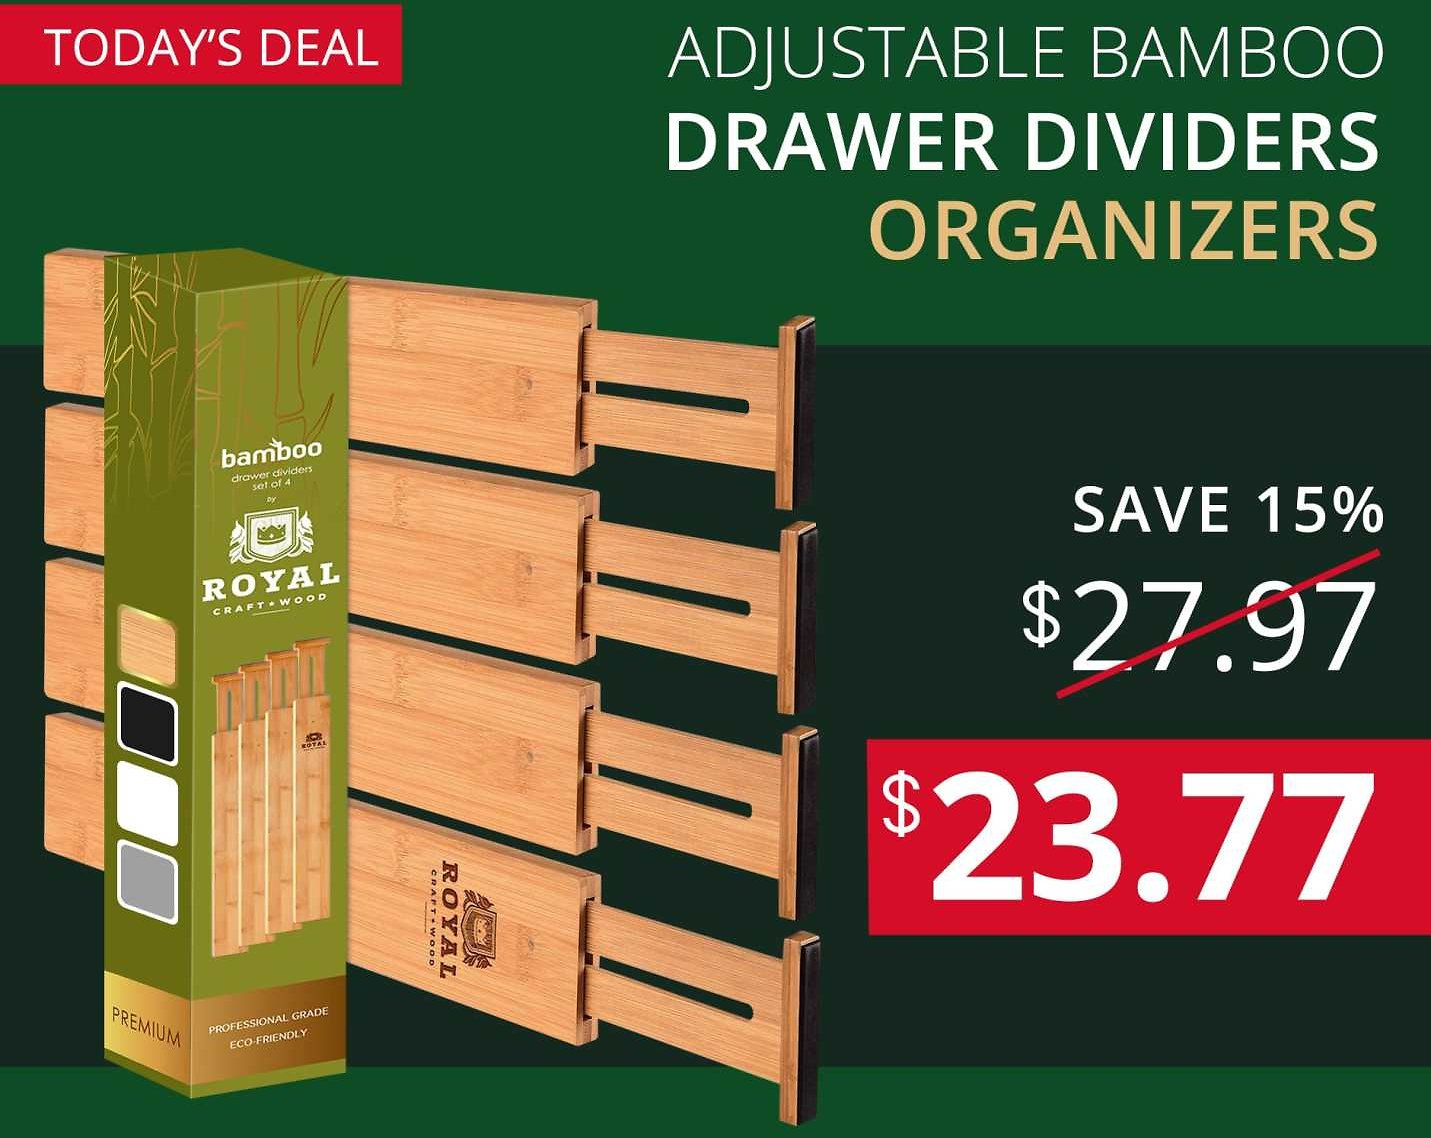 🎁 Lightning Deal -15%OFF 🎁 Adjustable Bamboo Drawer Dividers Organizers